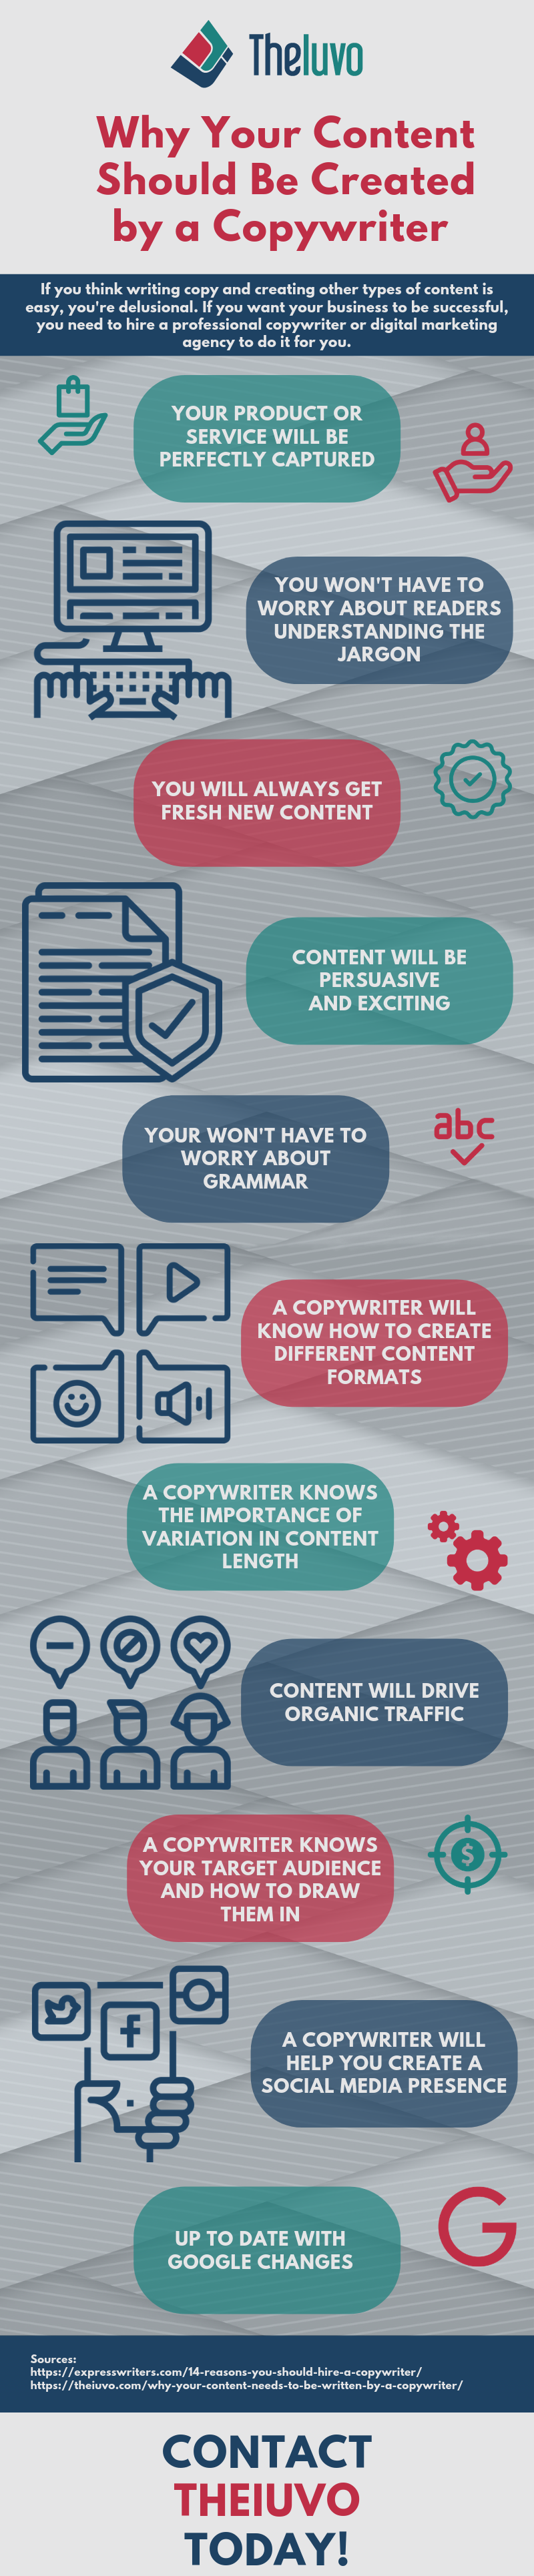 Why Your Content Should Be Created by a Copywriter Infographic